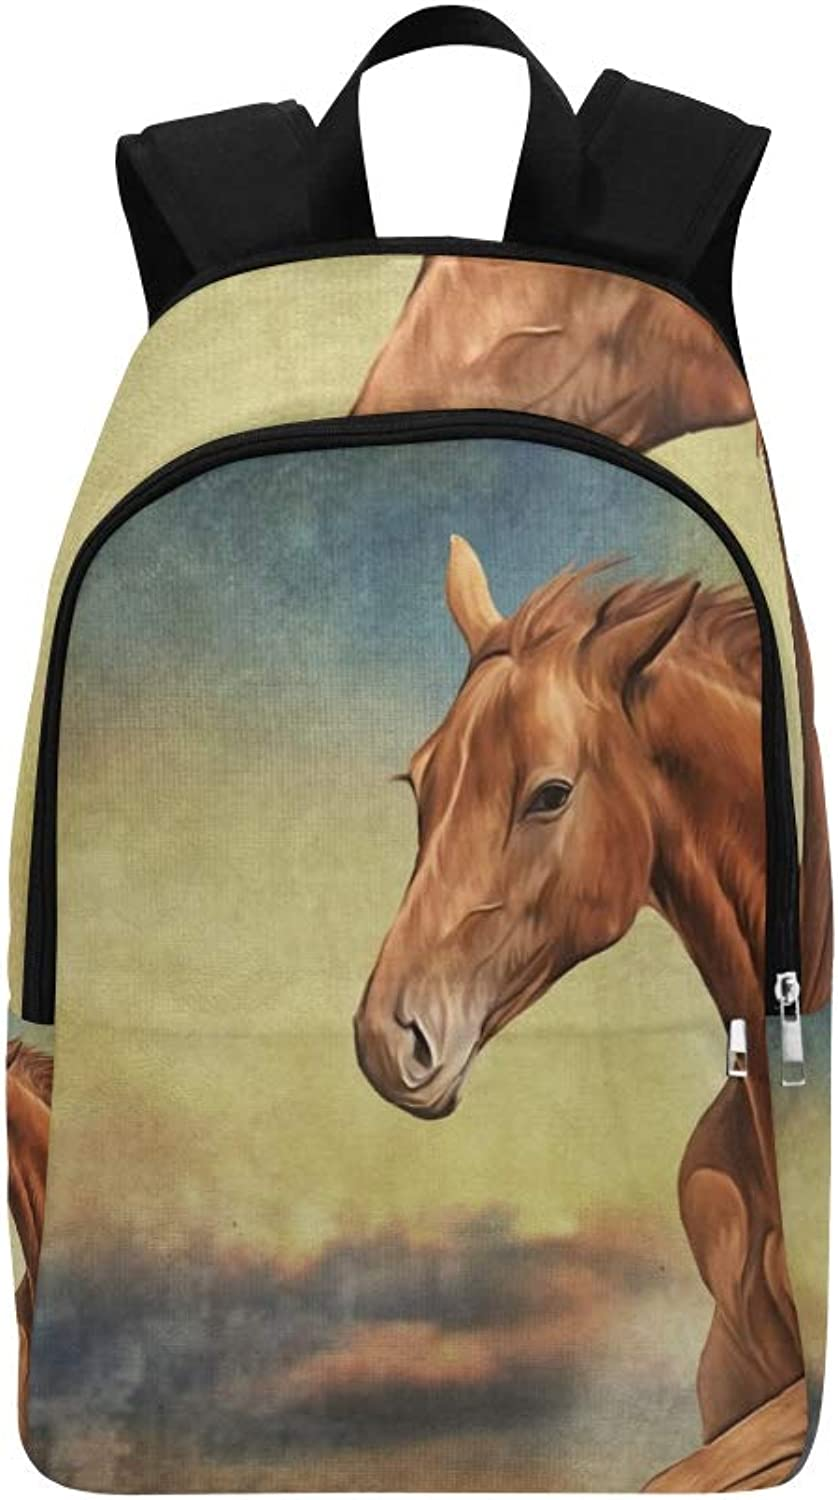 Drawing Red Horse Portrait Oil Painting Casual Daypack Travel Bag College School Backpack for Mens and Women